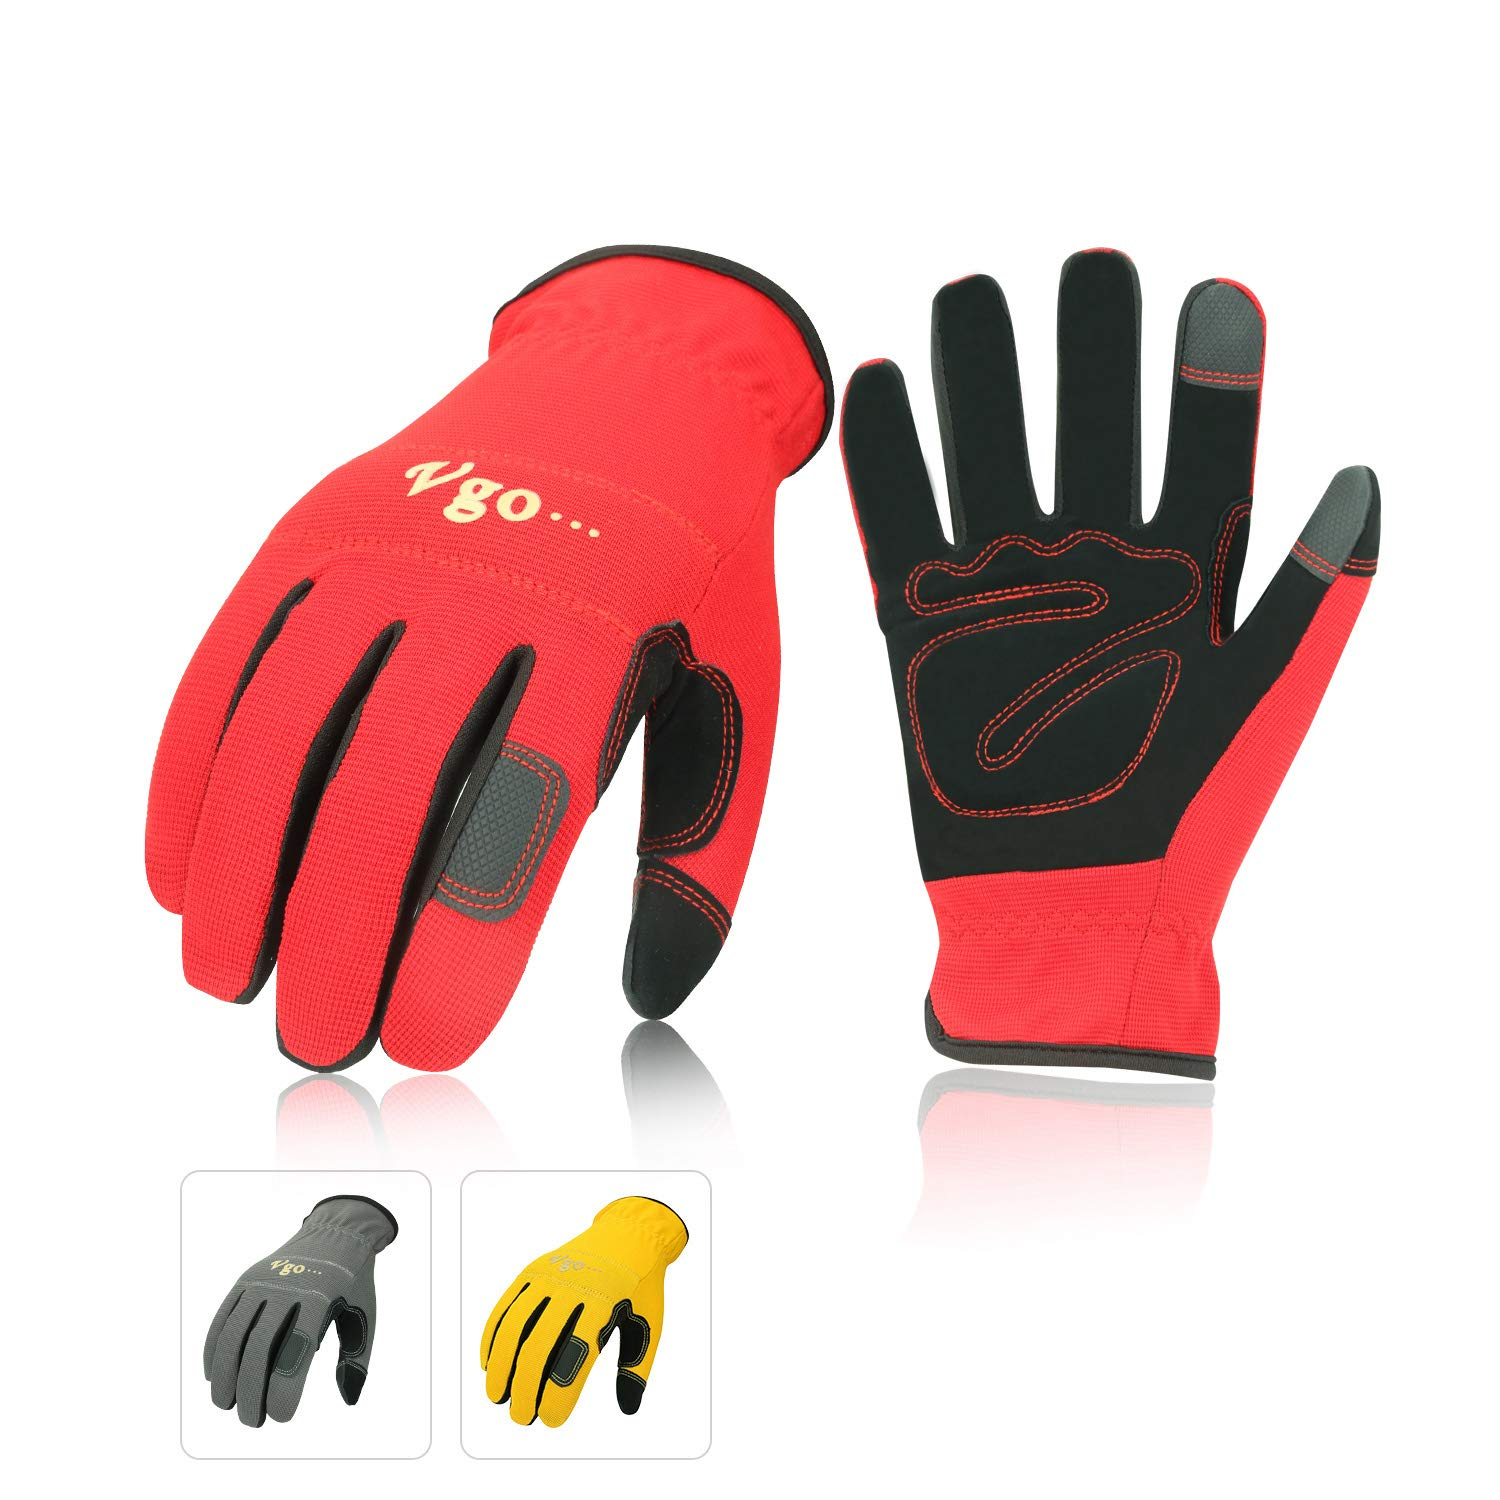 Vgo… Nubuck Leather Work Gloves (3 Pairs, Red+Grey+Yellow, Size 8/M,9/L,10/XL)